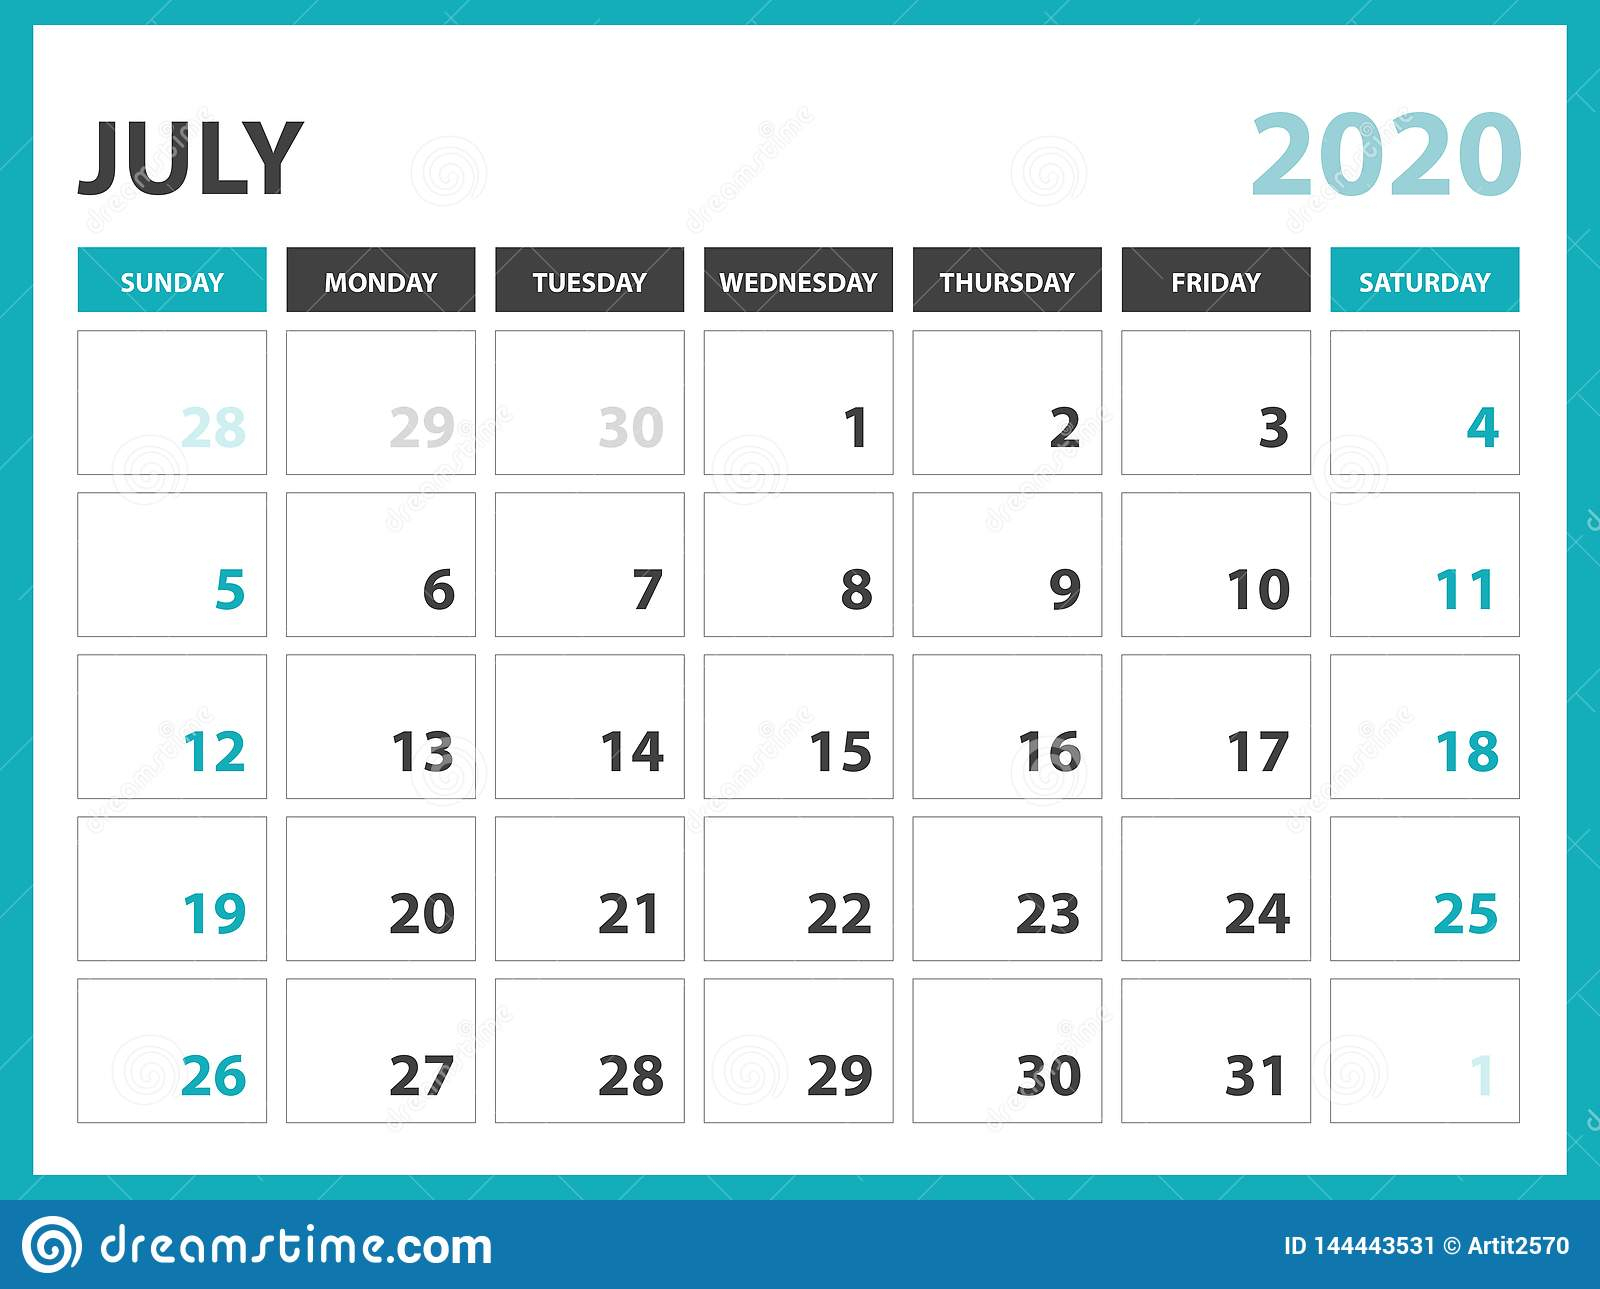 Desk Calendar Layout Size 8 X 6 Inch, July 2020 Calendar with regard to July Of 2020